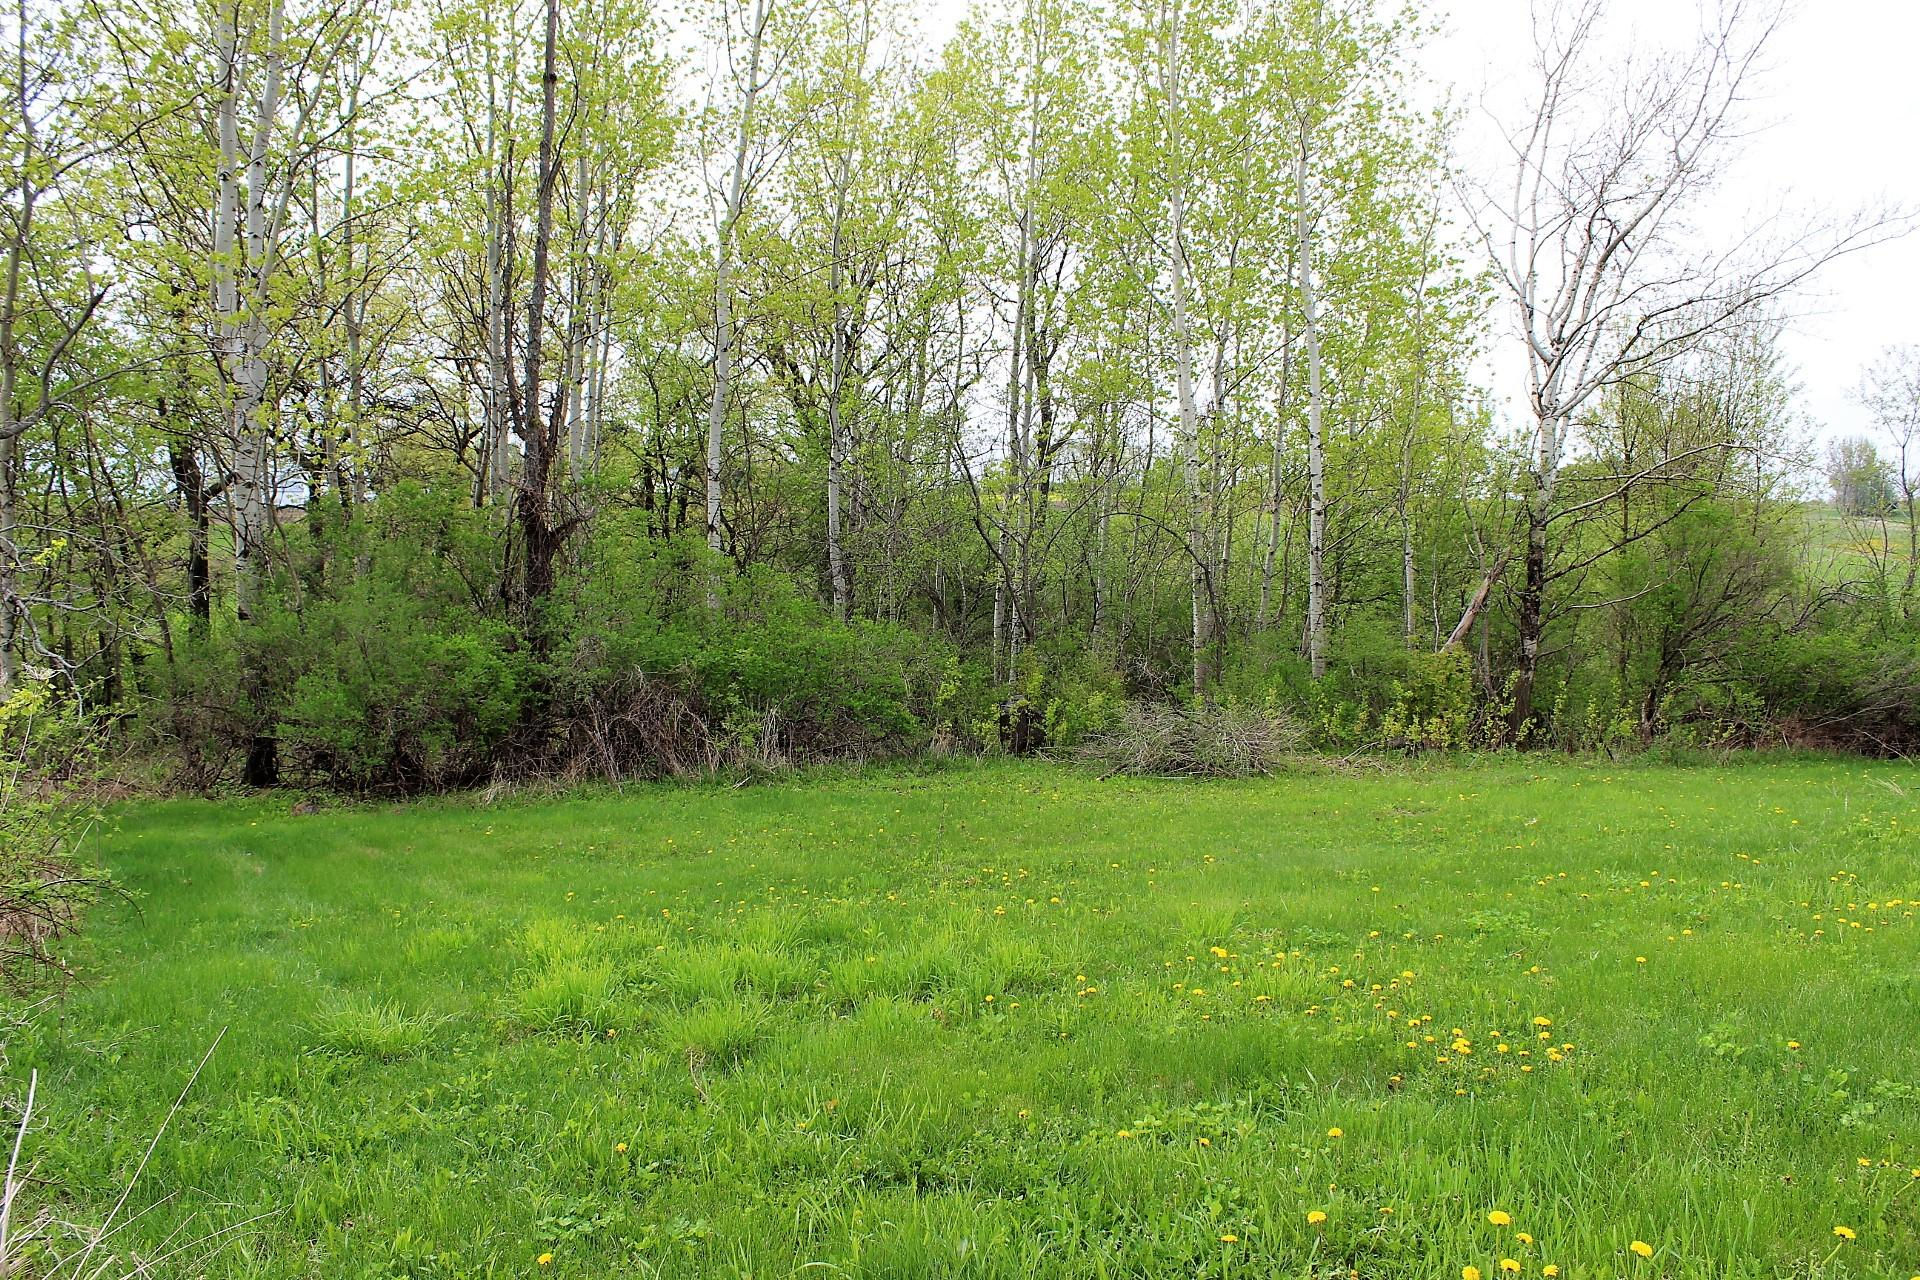 Lot 63 Golfview Cir, Viroqua, Wisconsin 54665, ,Vacant Land,For Sale,Golfview Cir,1577239